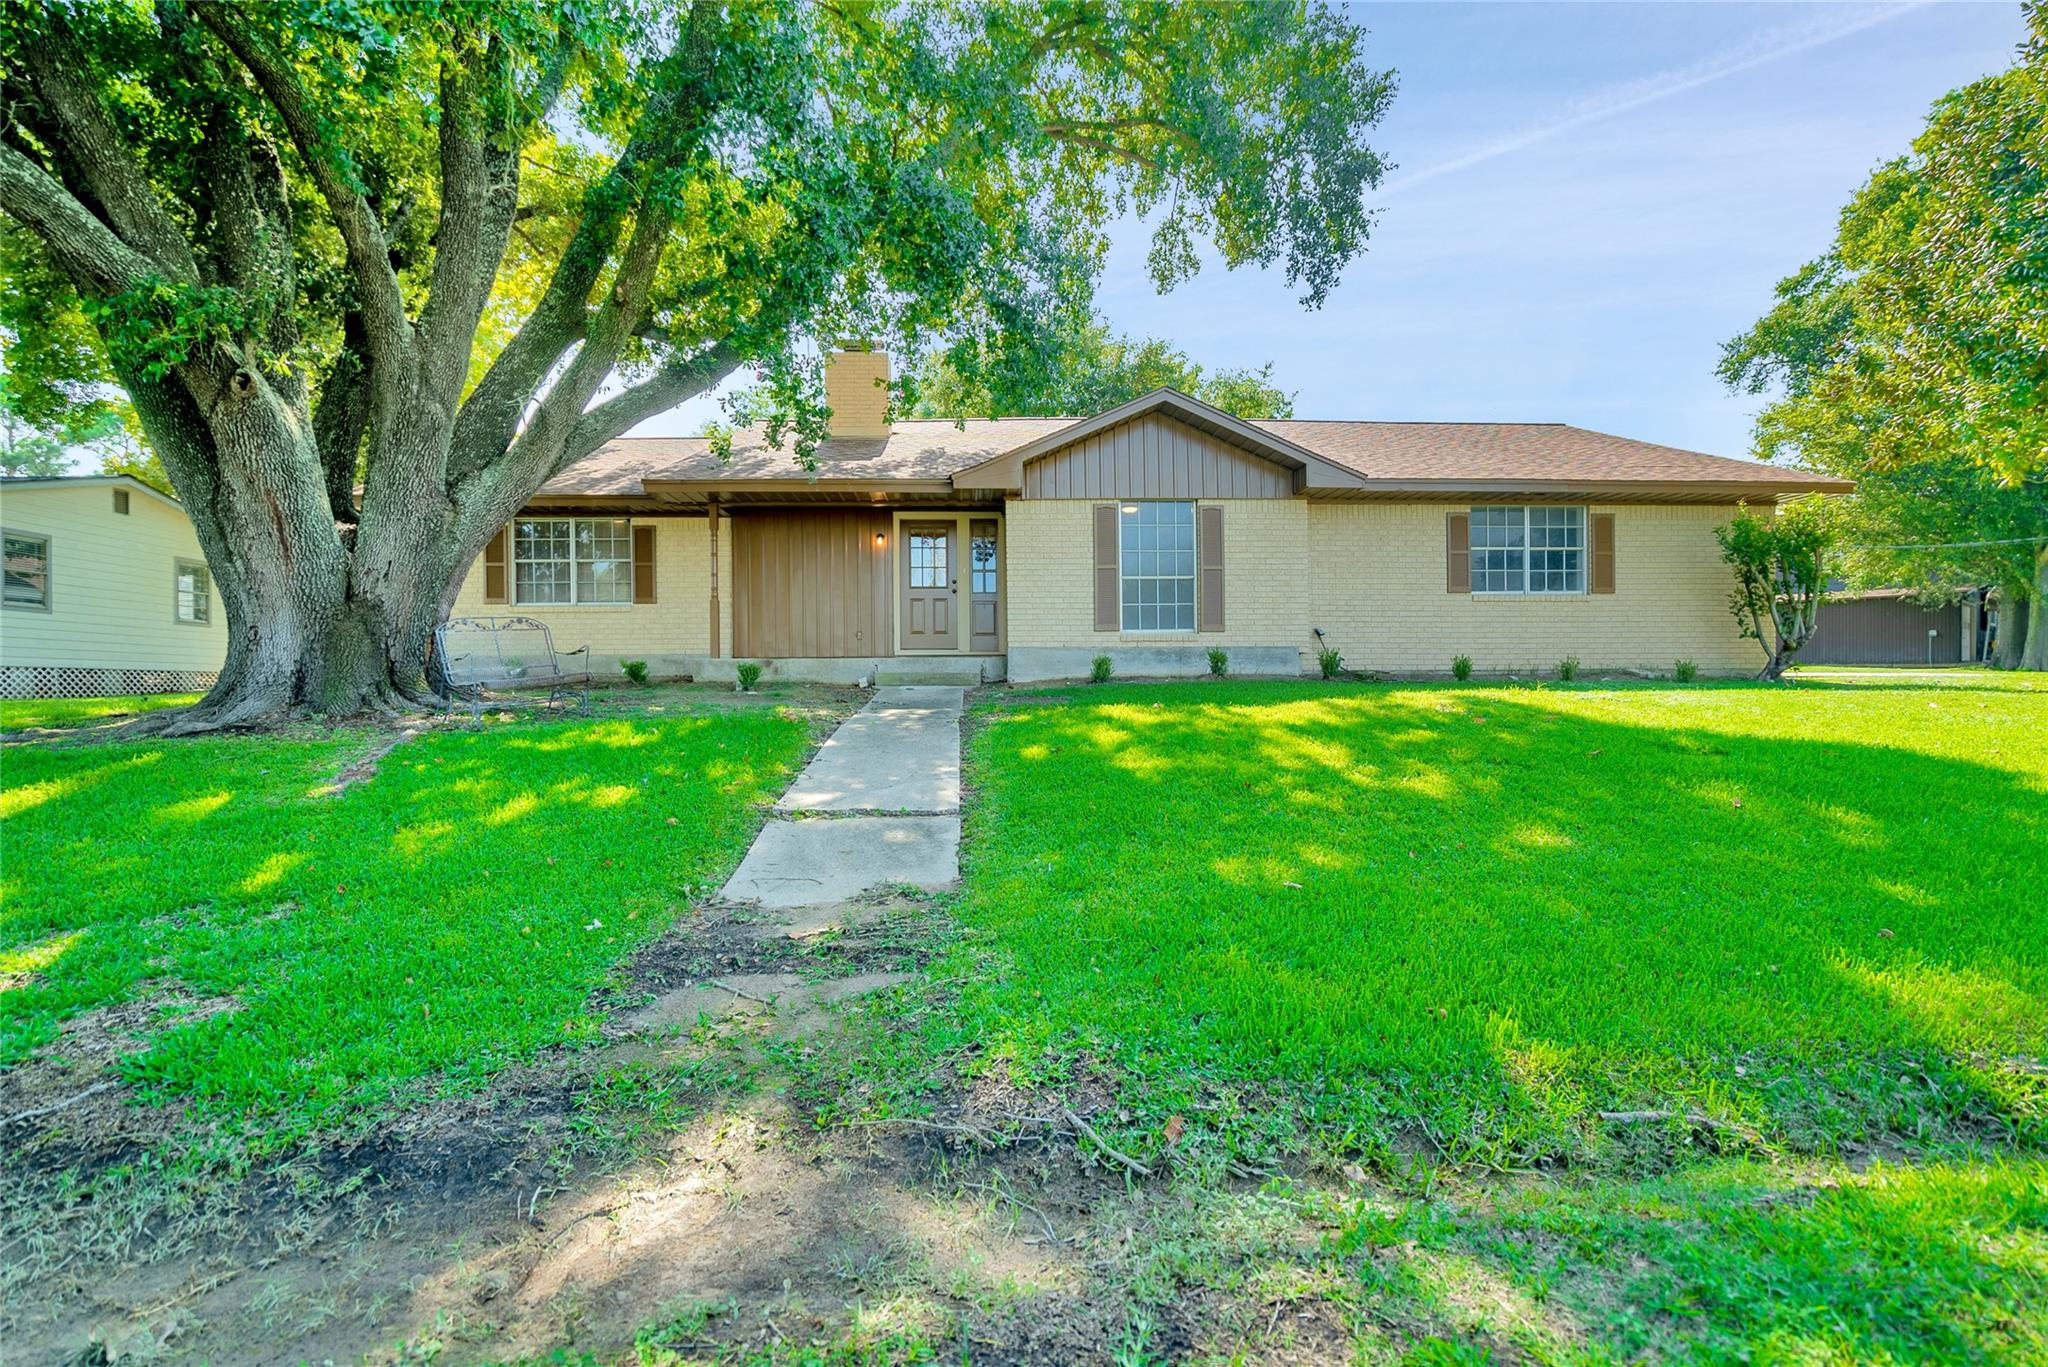 70 N Terrace Drive Property Photo - Point Blank, TX real estate listing